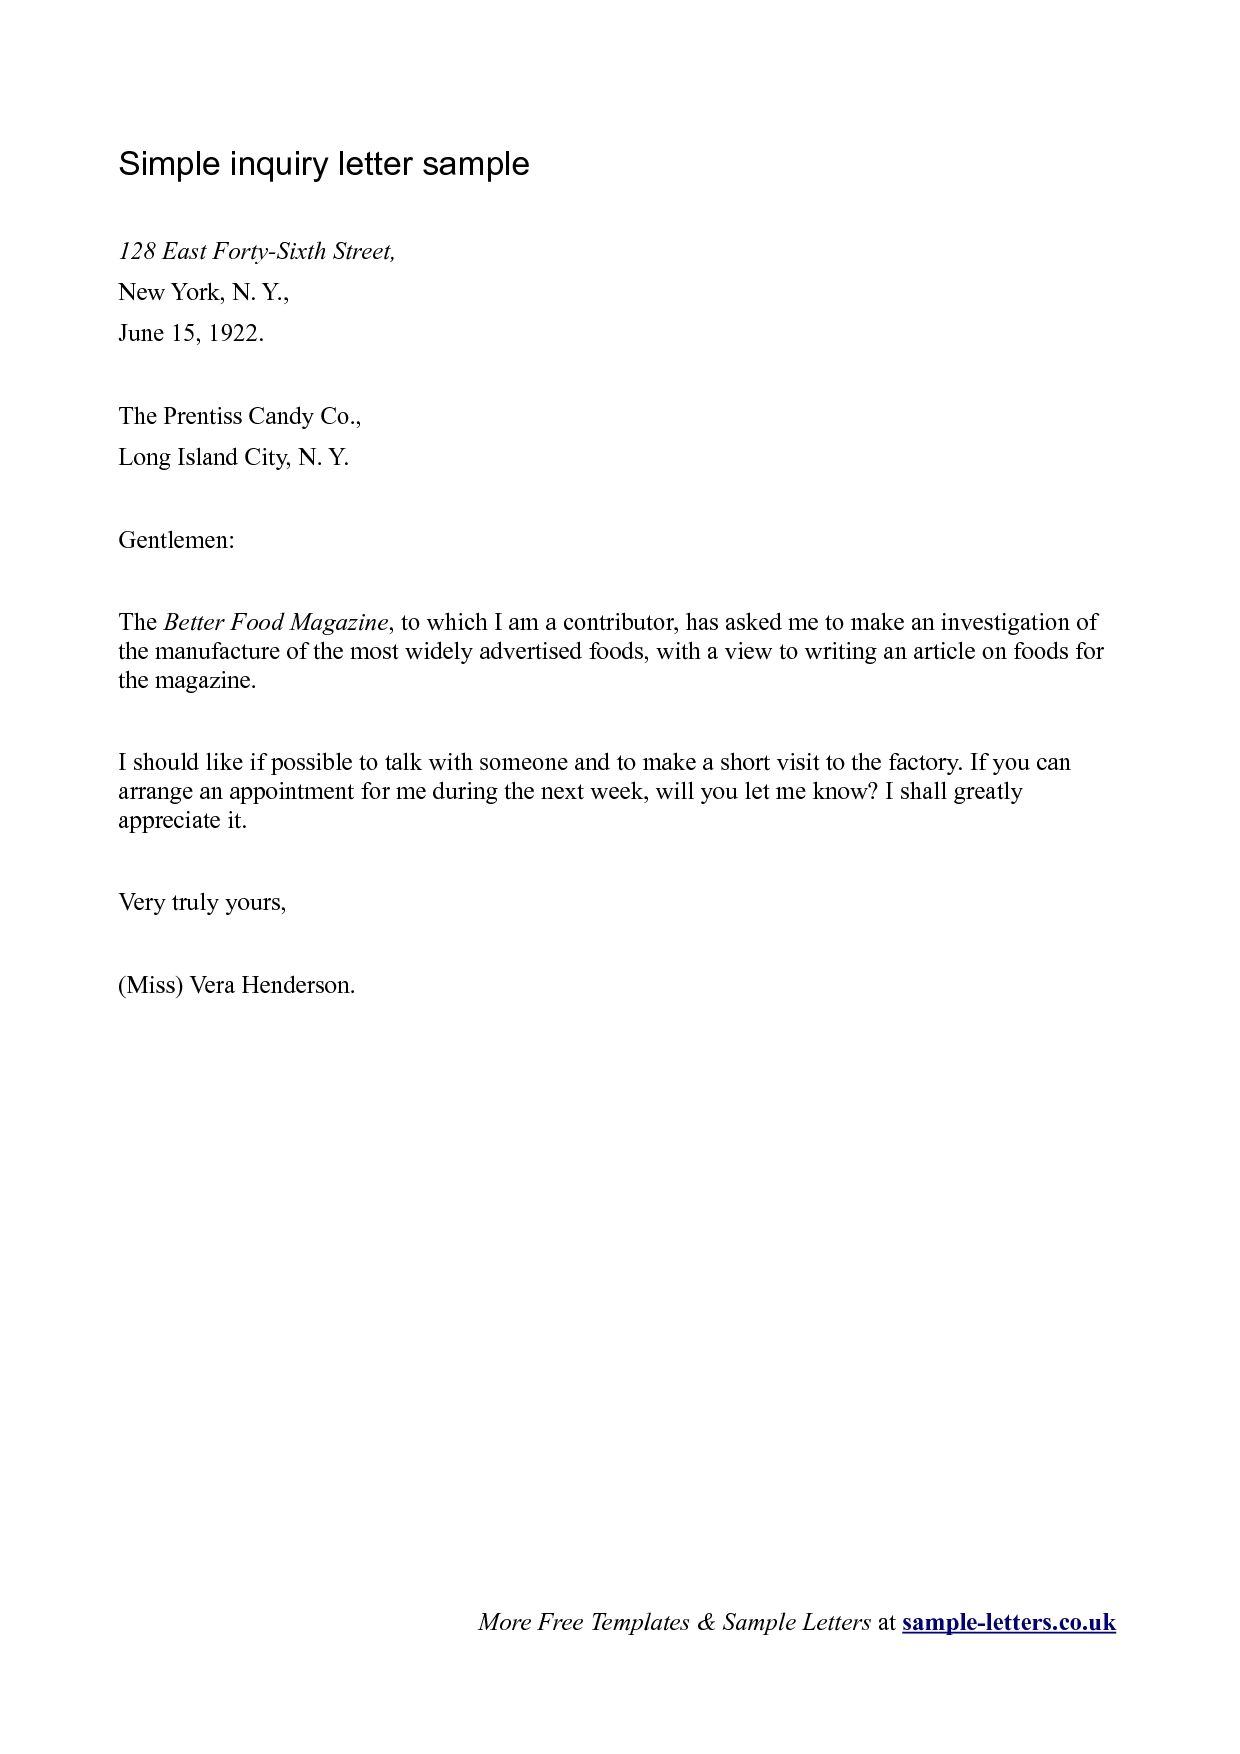 Business letter of inquiry sample the letter sample reading and business letter of inquiry sample the letter sample yadclub Images